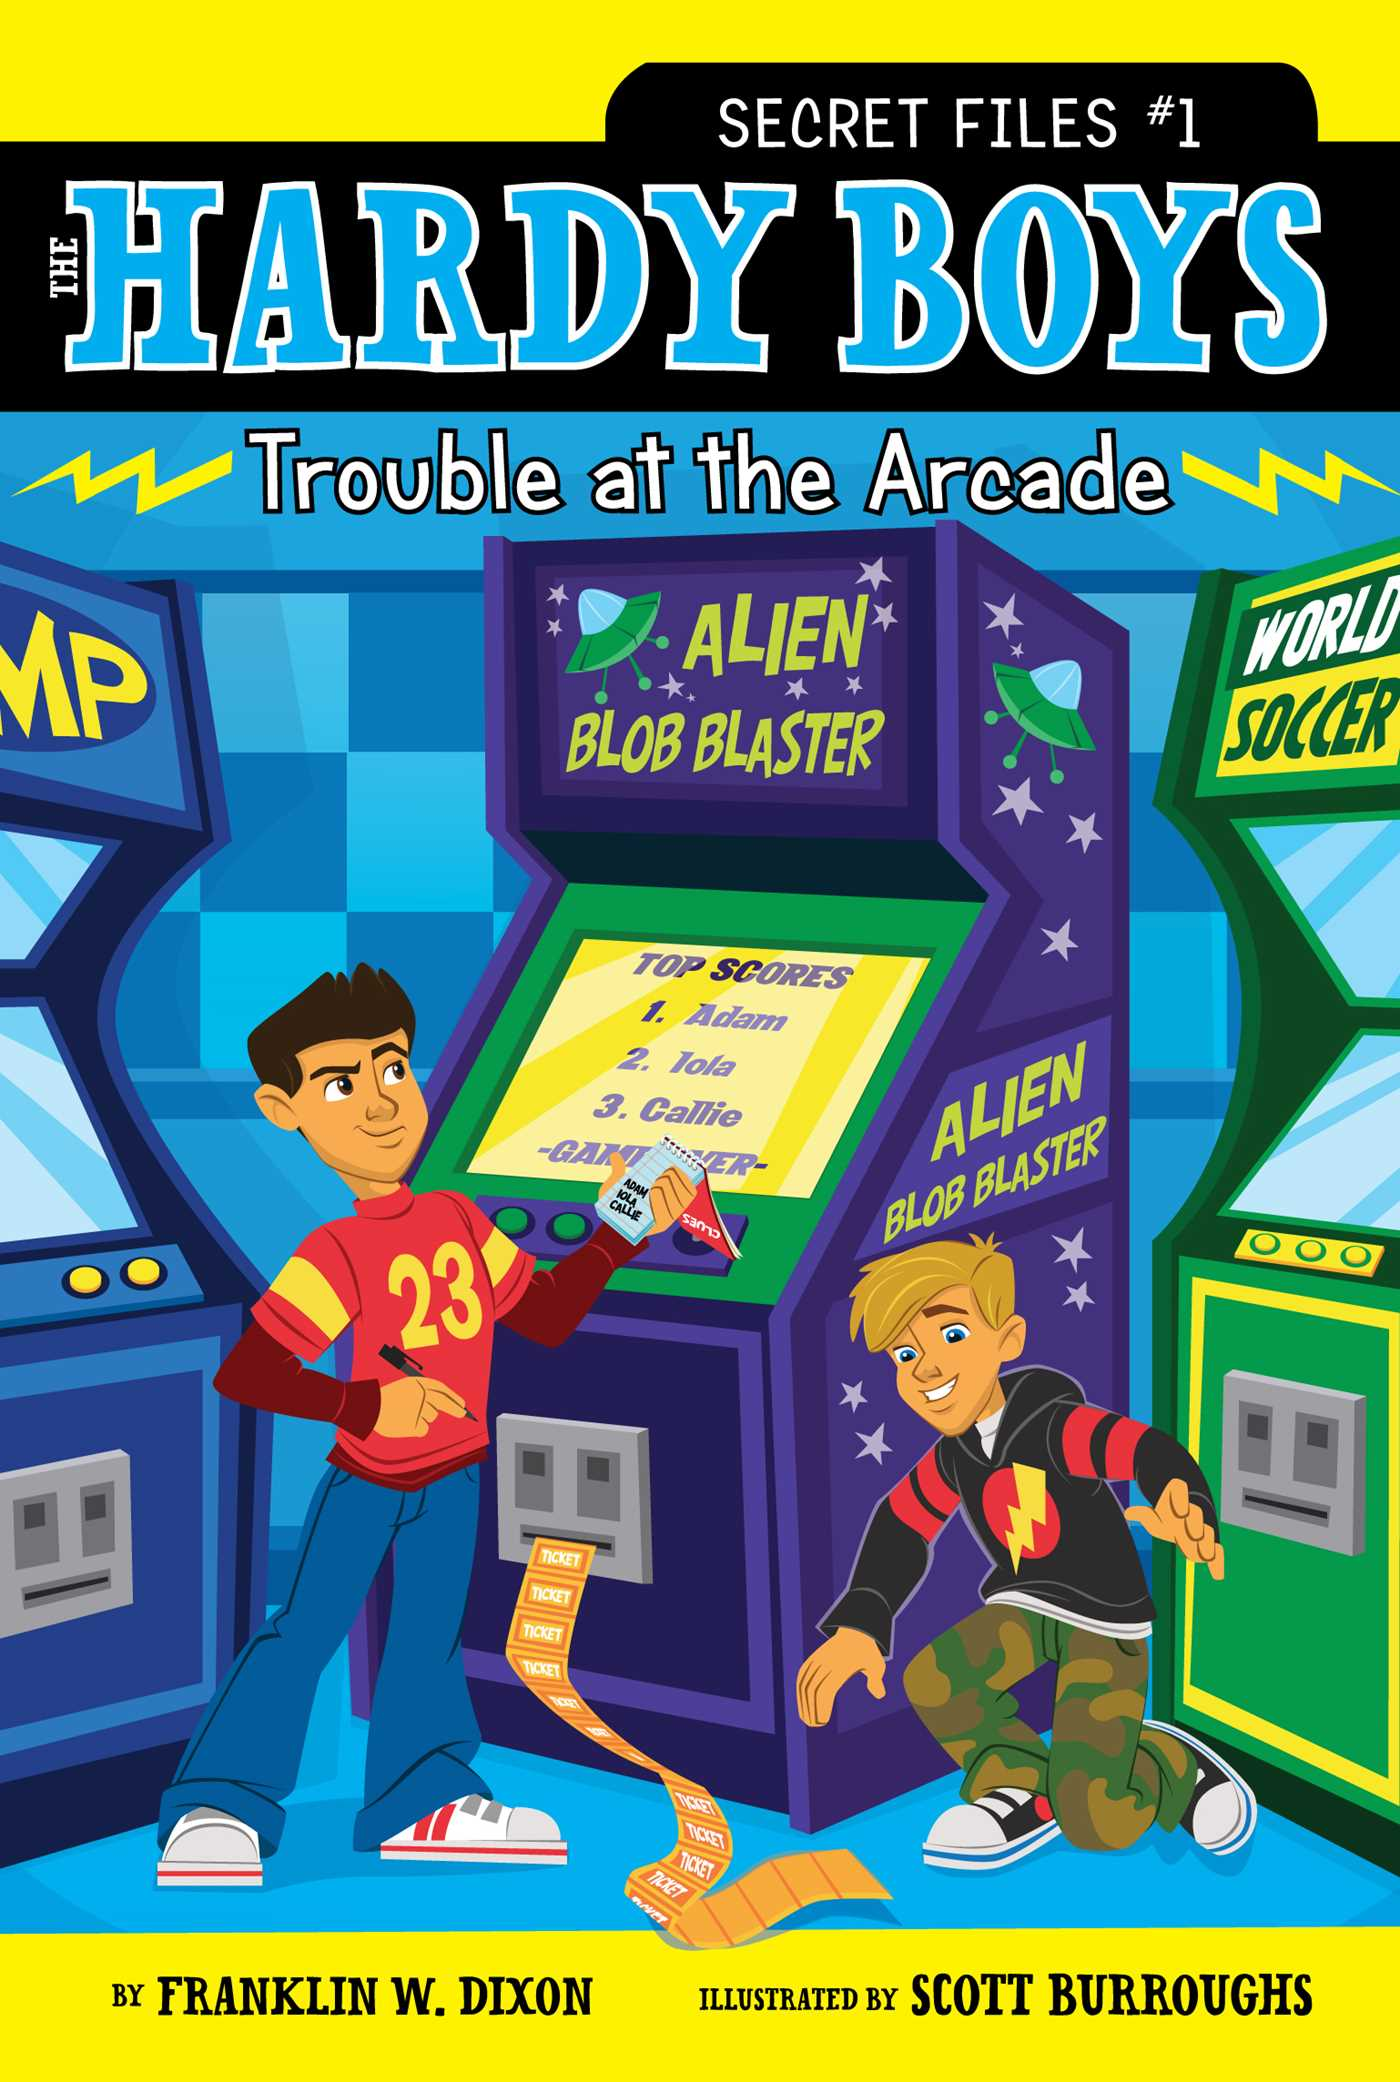 Trouble at the arcade 9781416999225 hr